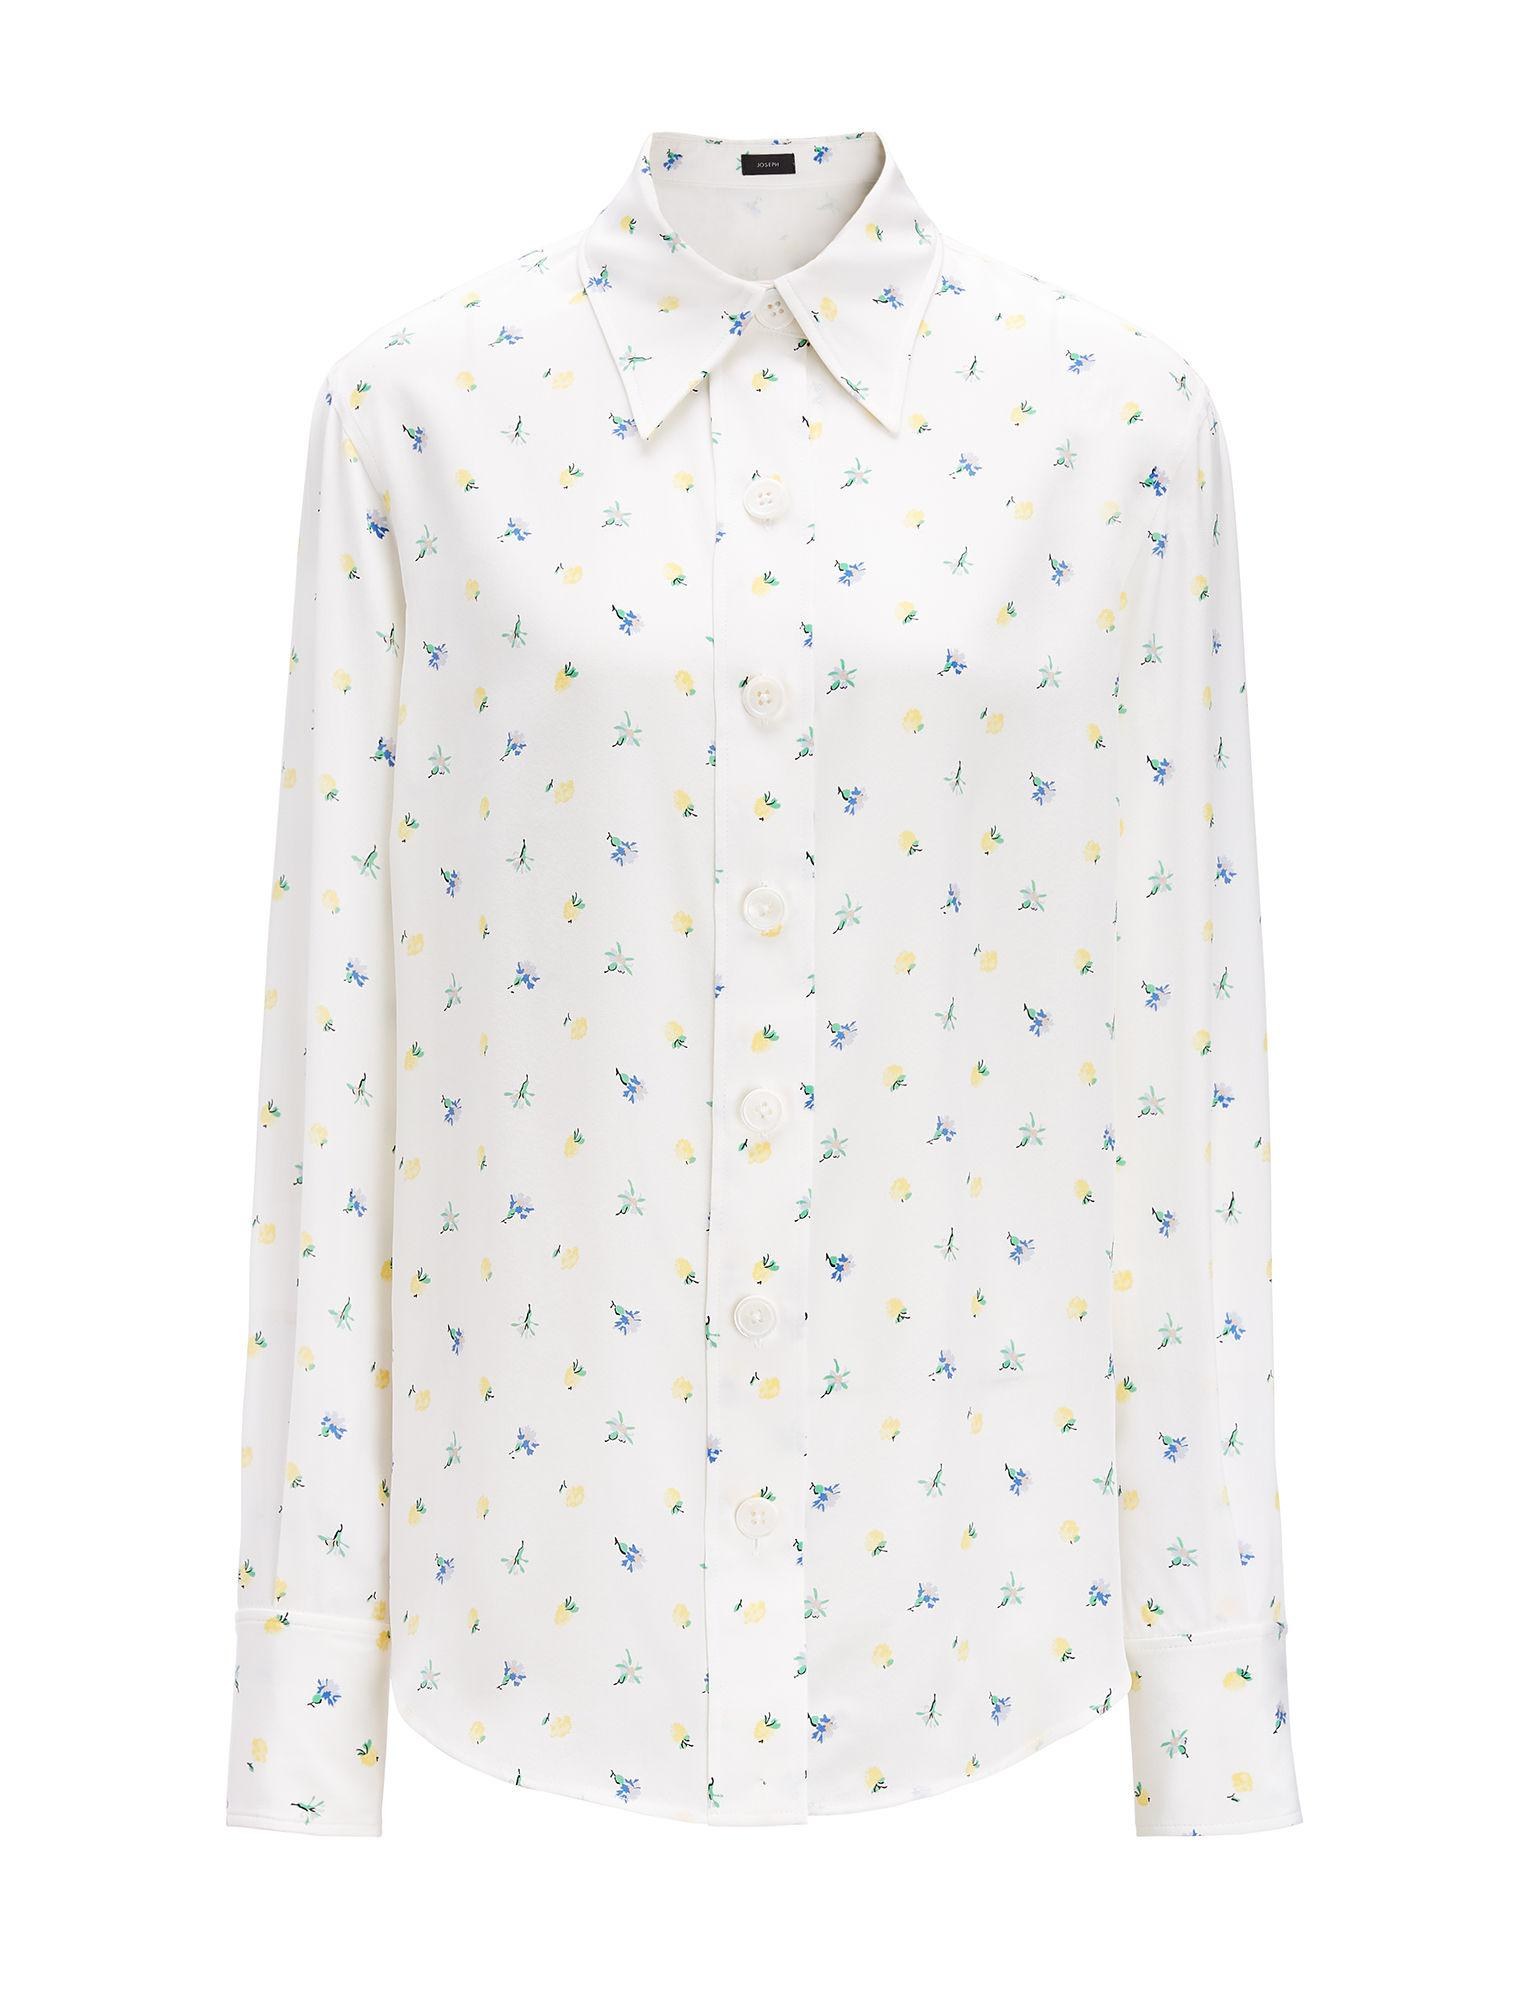 Best Authentic New Garcon polka-dot print shirt Joseph Free Shipping Countdown Package Free Shipping Explore qCIC97Idd